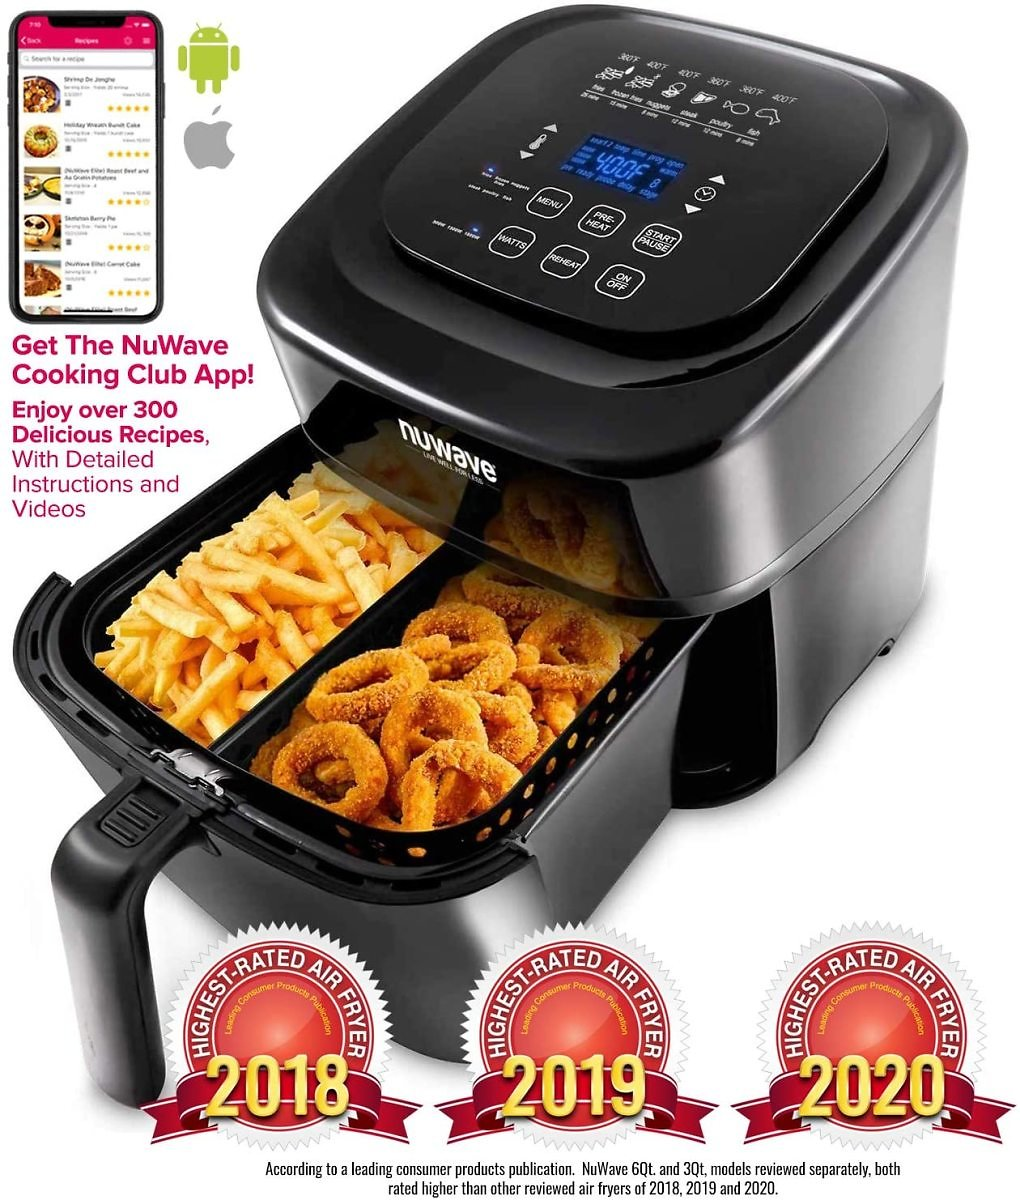 NUWAVE BRIO 6-Quart Digital Air Fryer with One-touch Digital Controls, 6 Easy Presets, Temperature Control